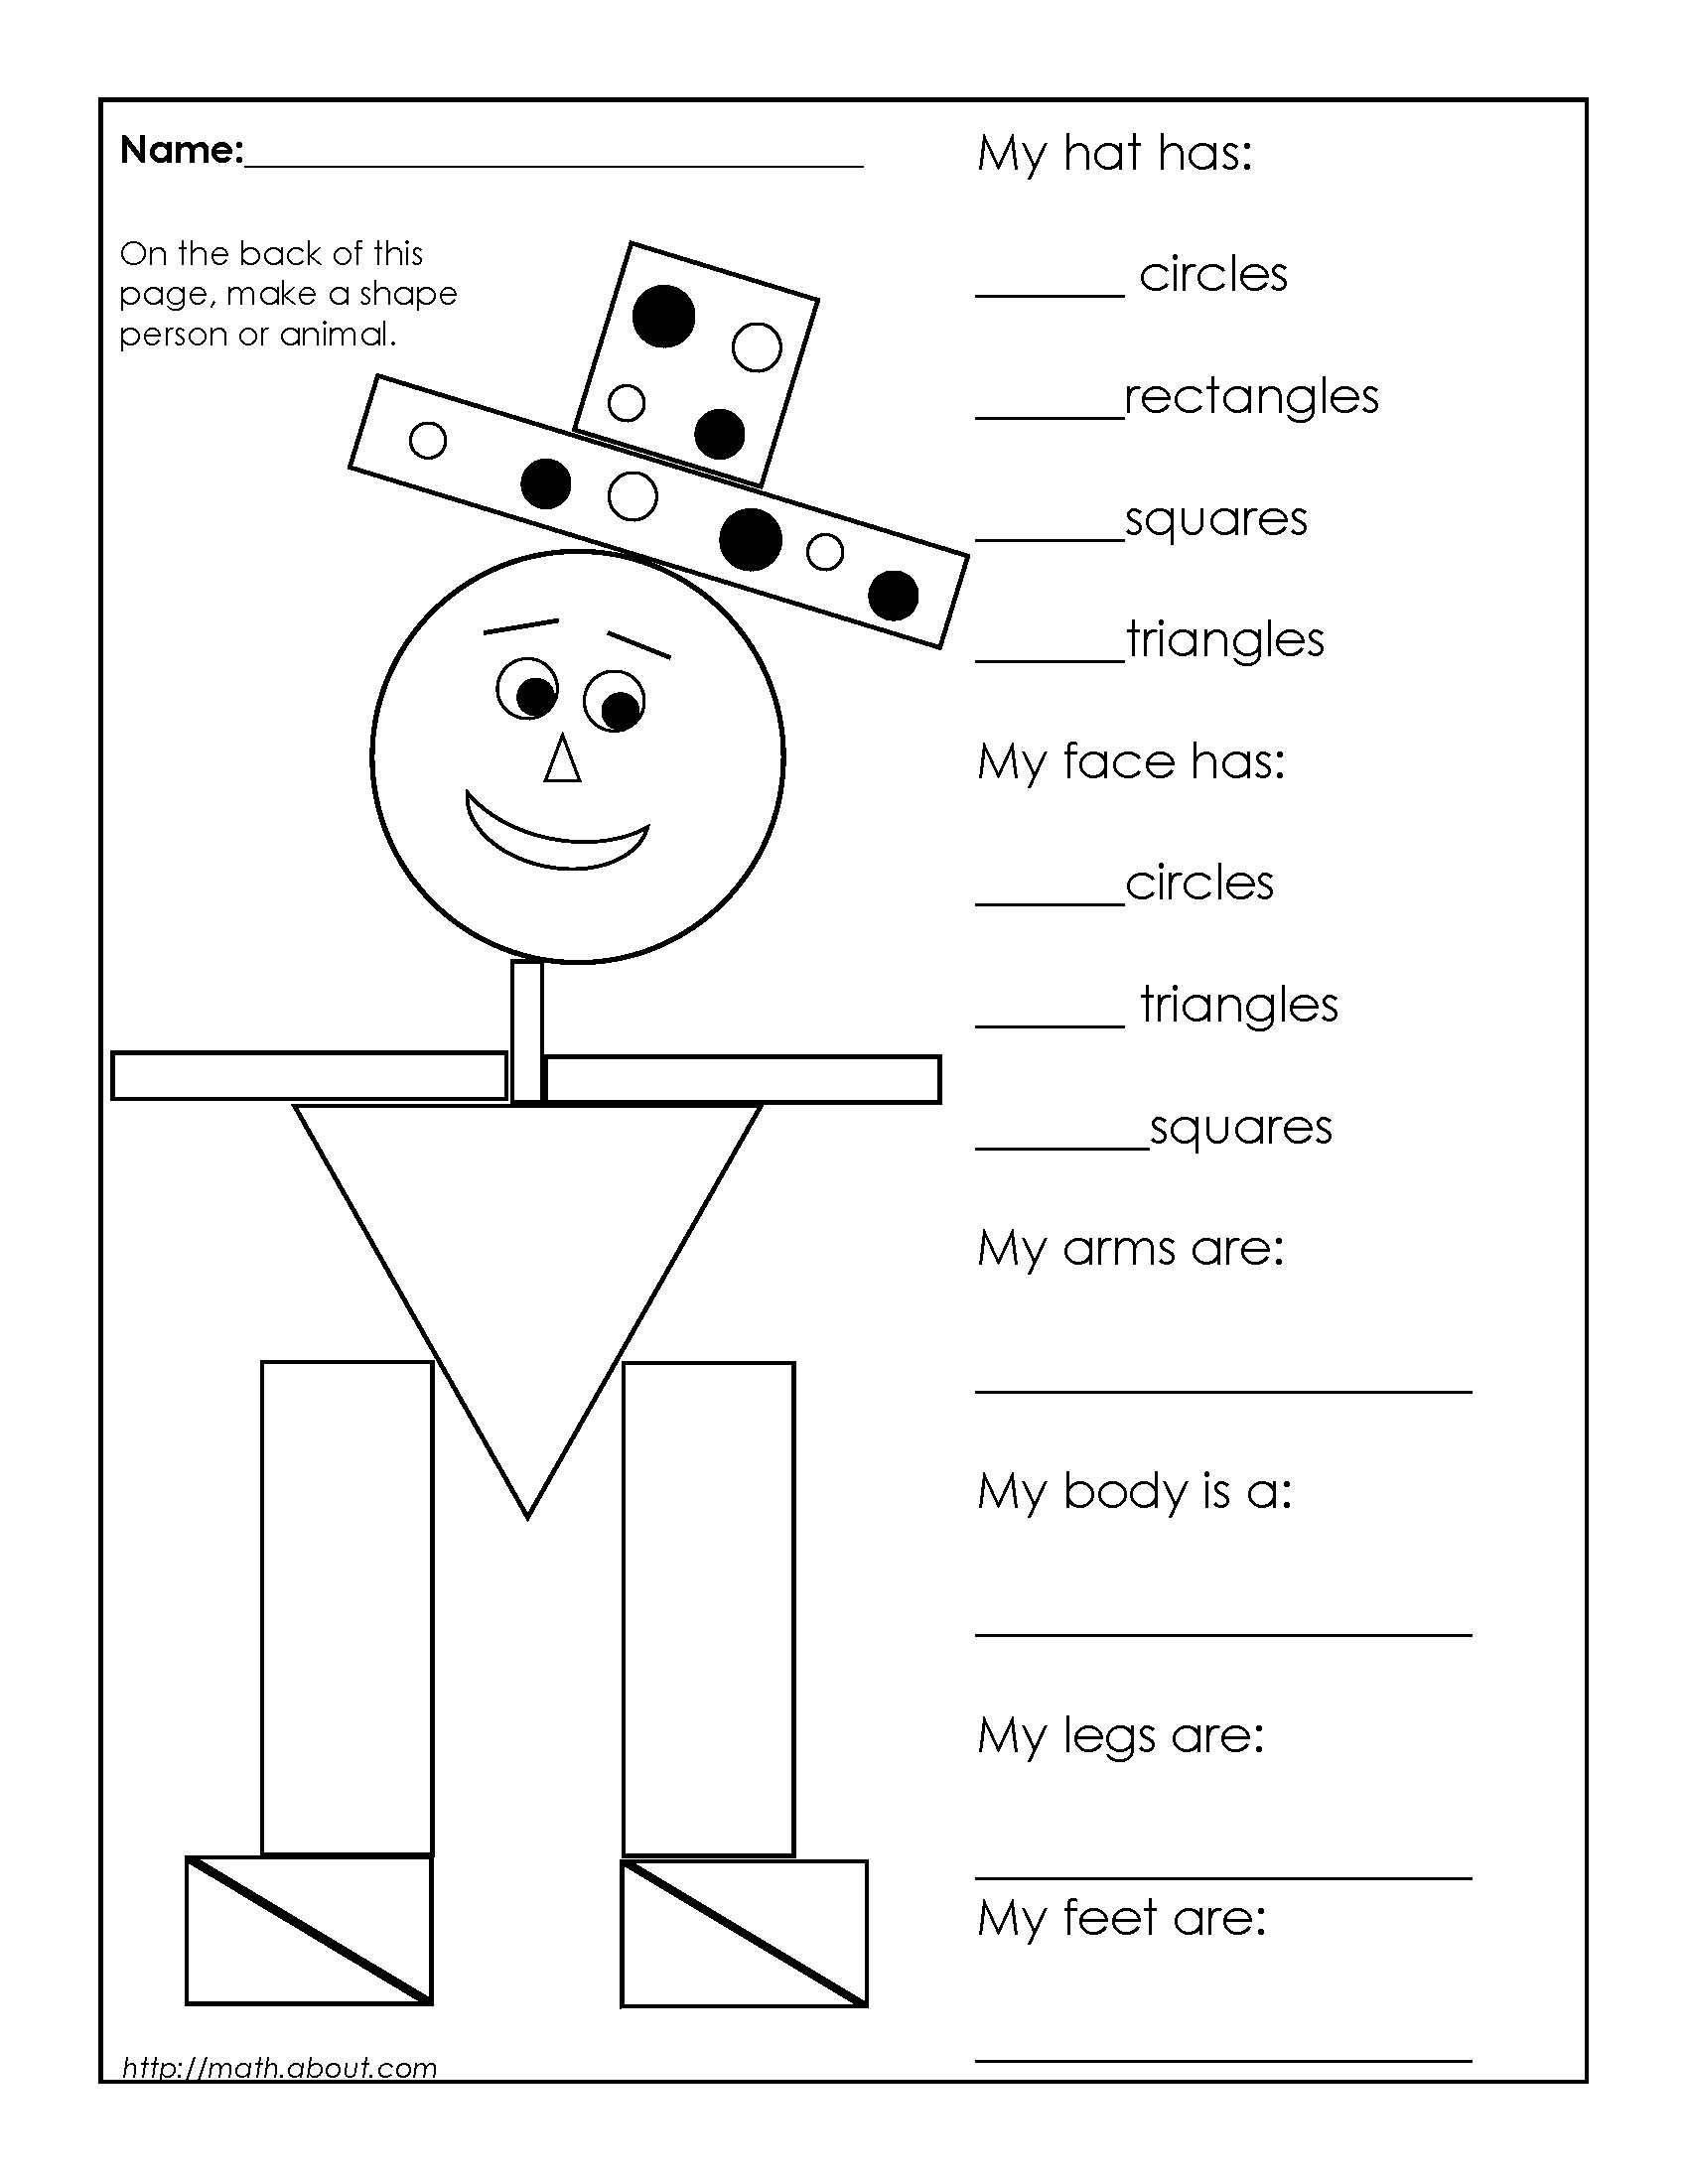 6th Grade Geometry Worksheets First Grade Math Worksheets Geometry Worksheets 1st Grade Math Worksheets